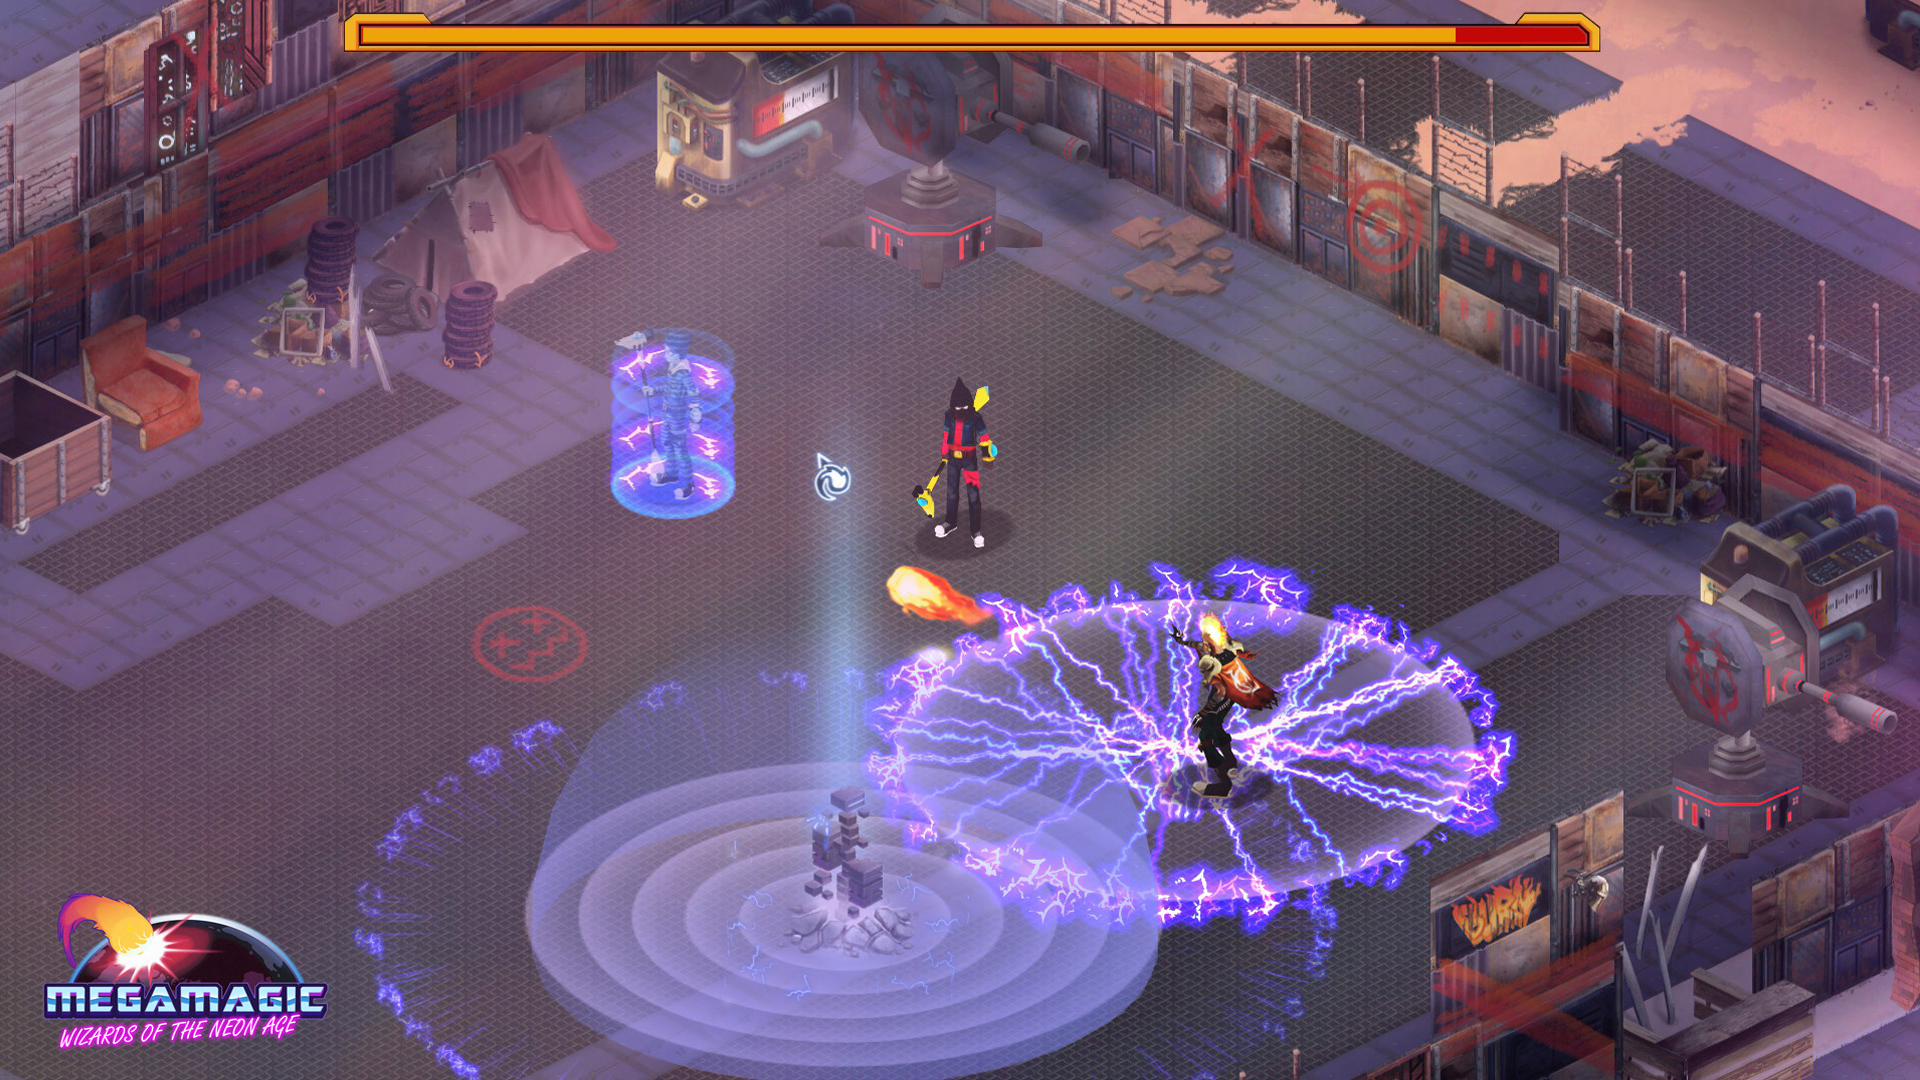 Megamagic: Wizards of the Neon Age screenshot